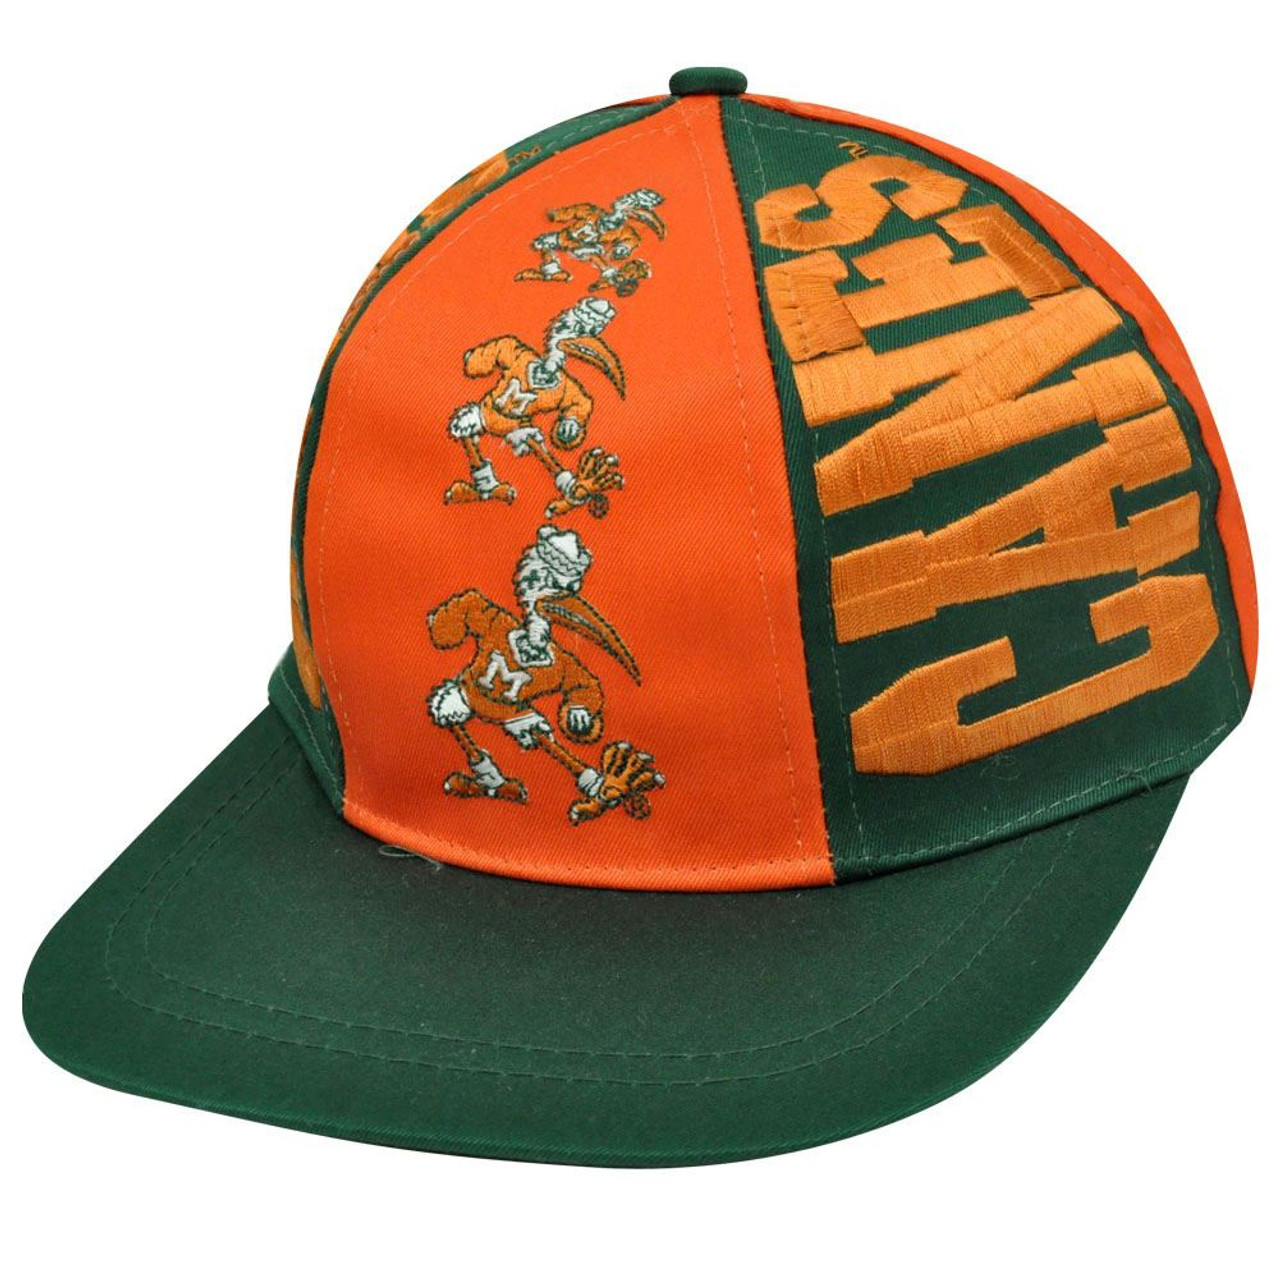 NCAA Miami Hurricanes Snapback Triple Threat Vintage Deadstock Hat Cap -  Sinbad Sports Store c0600d641c0